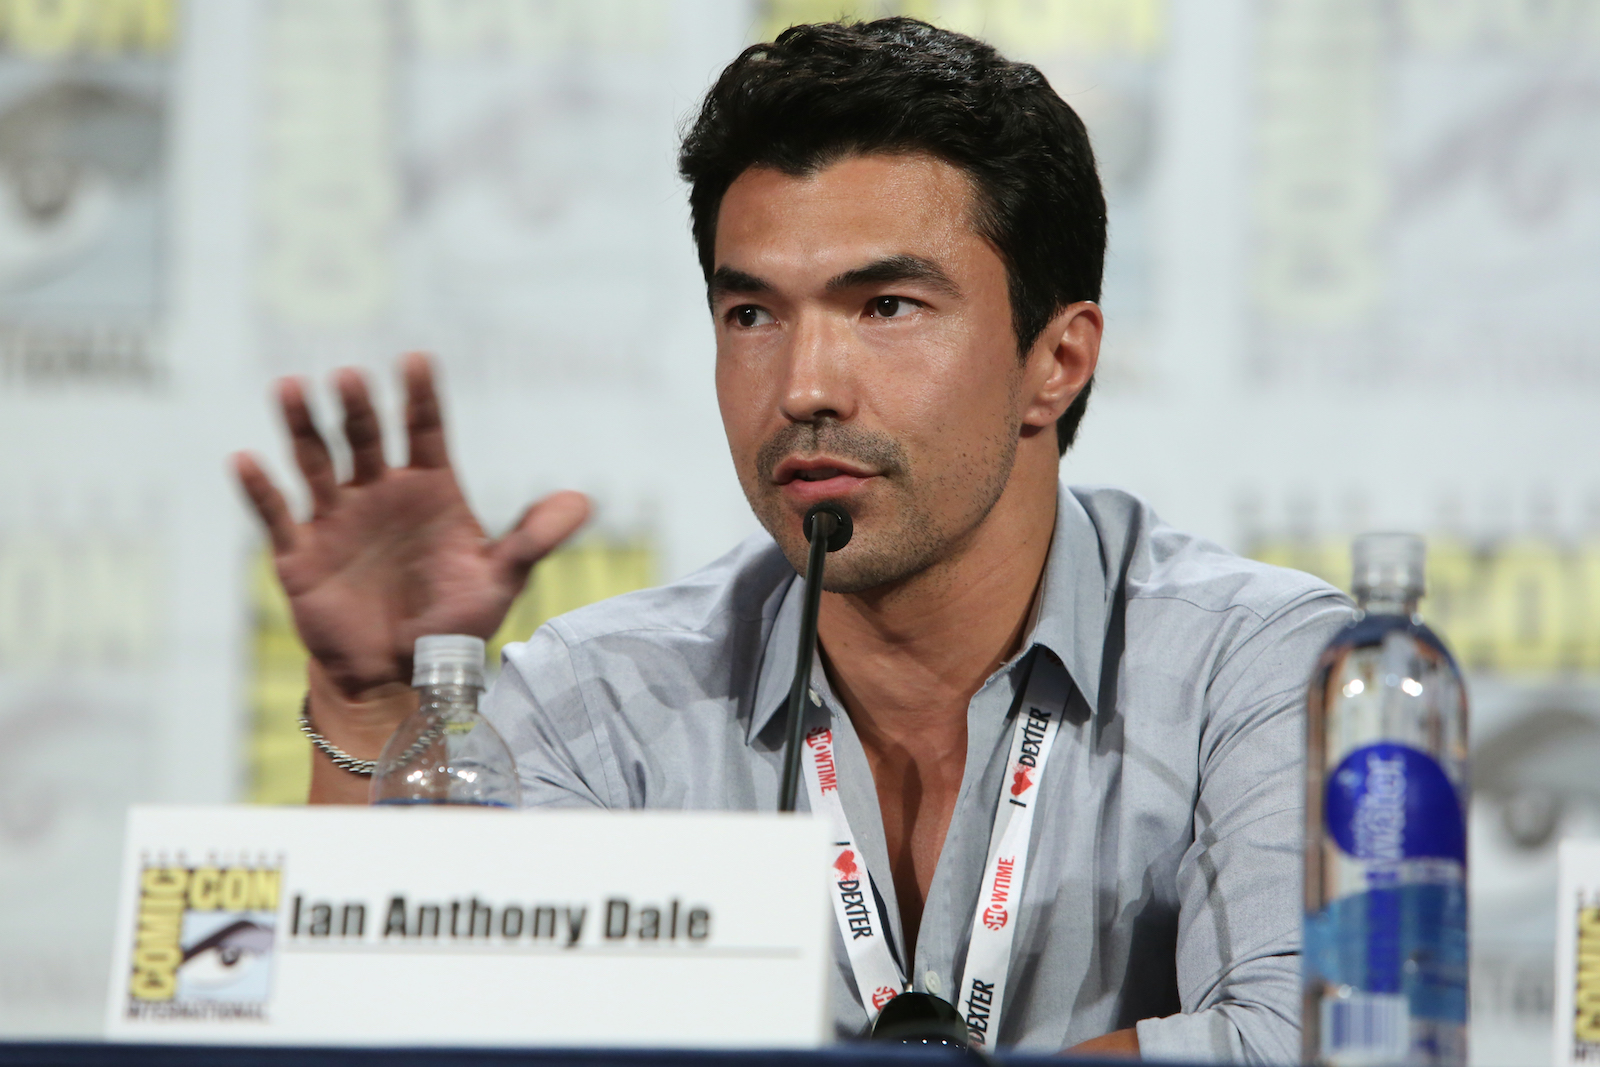 Ian Anthony Dale is a Star on the Rise!